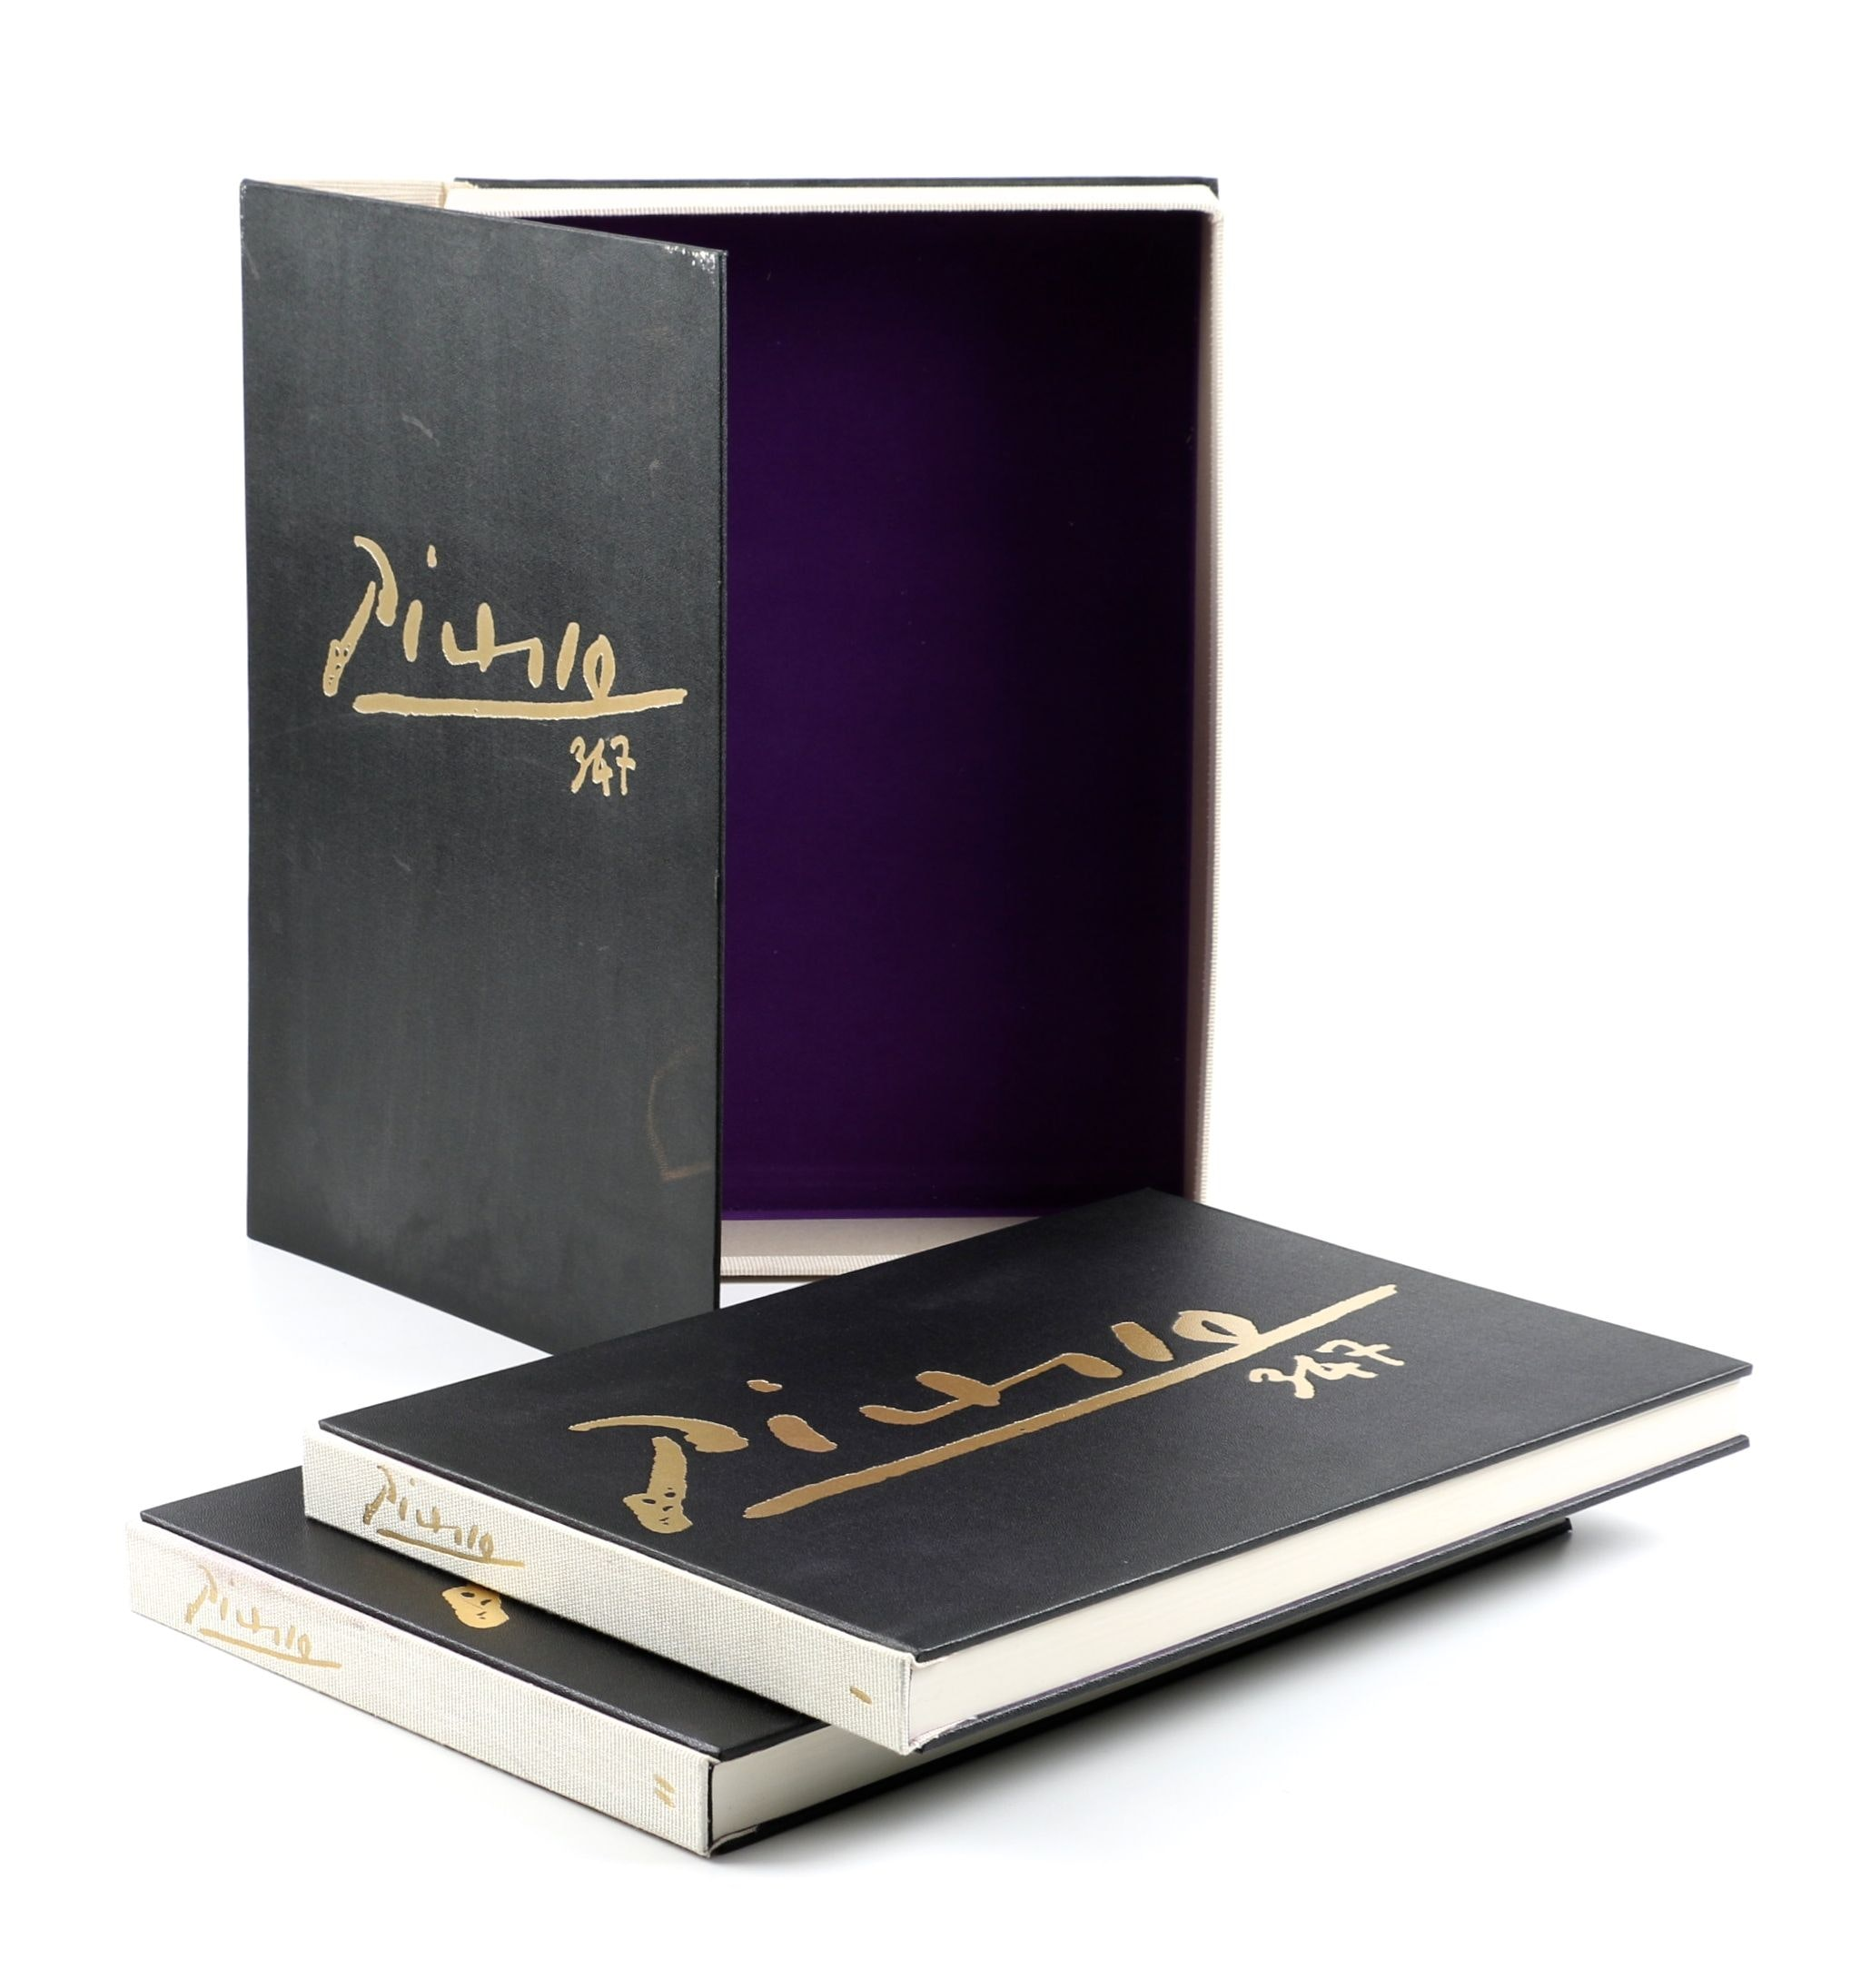 "Collector's Rare Complete First Edition ""Picasso 347"" Volumes"